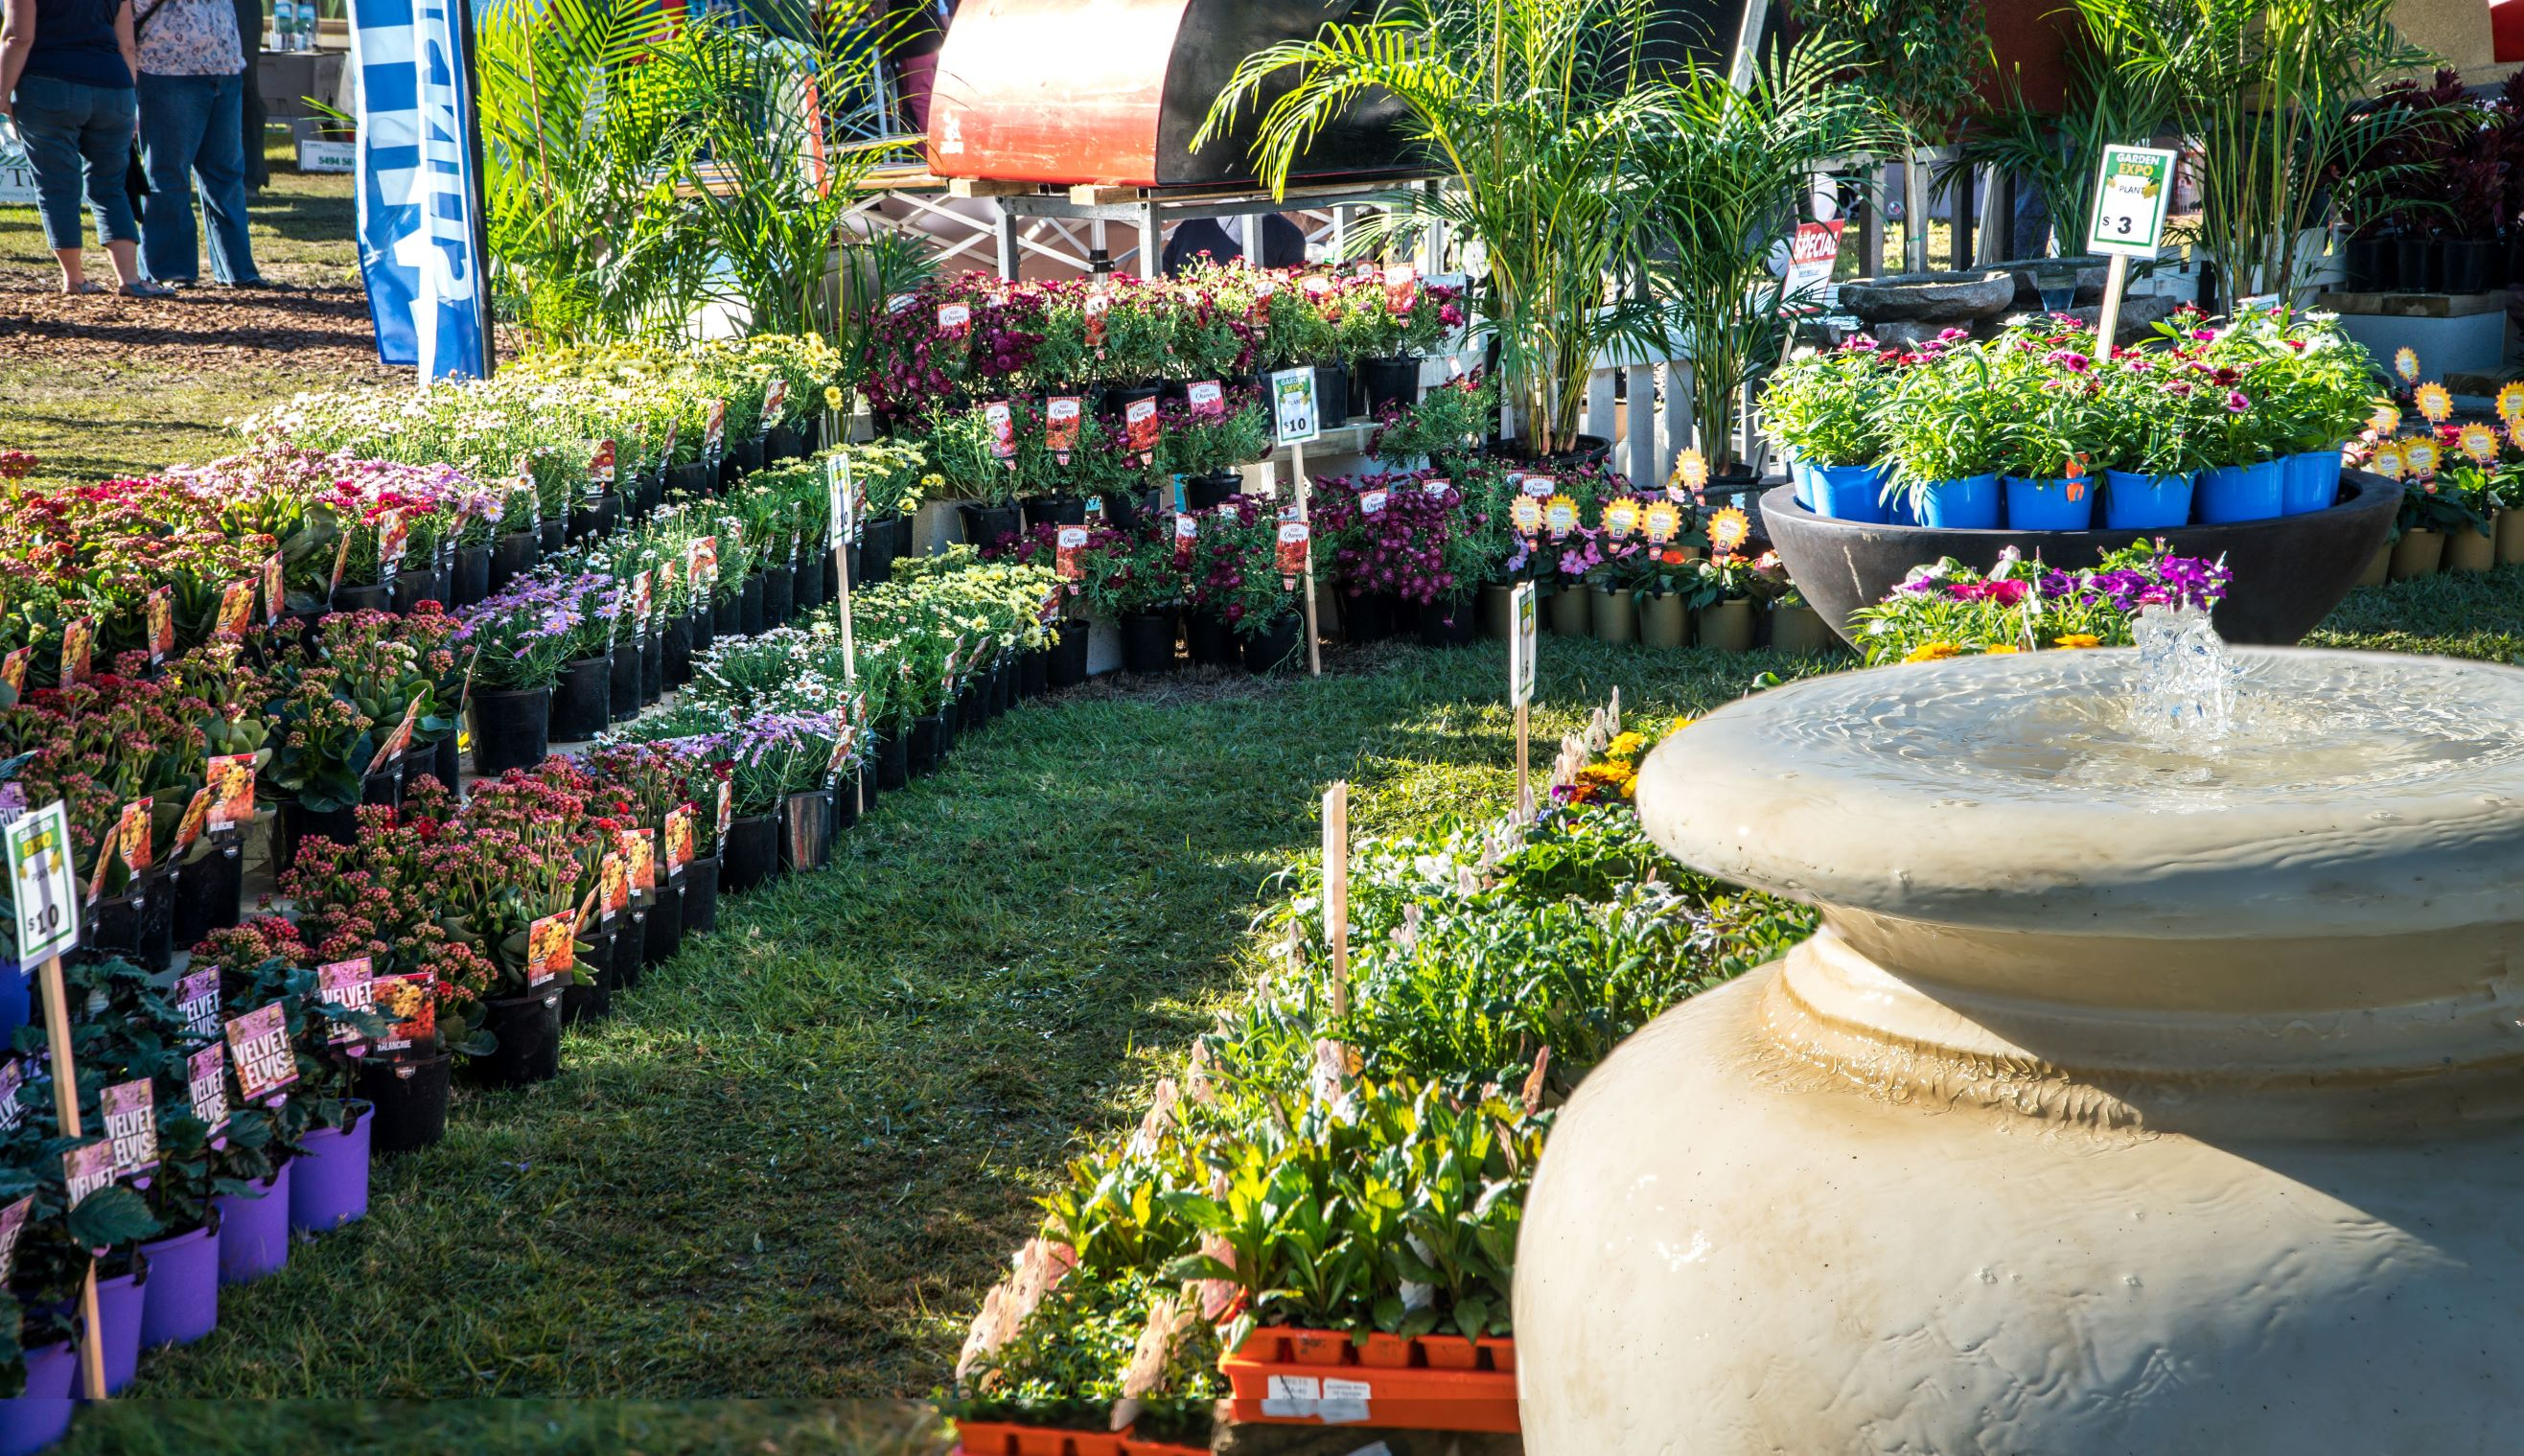 Queensland Garden Expo exhibitors